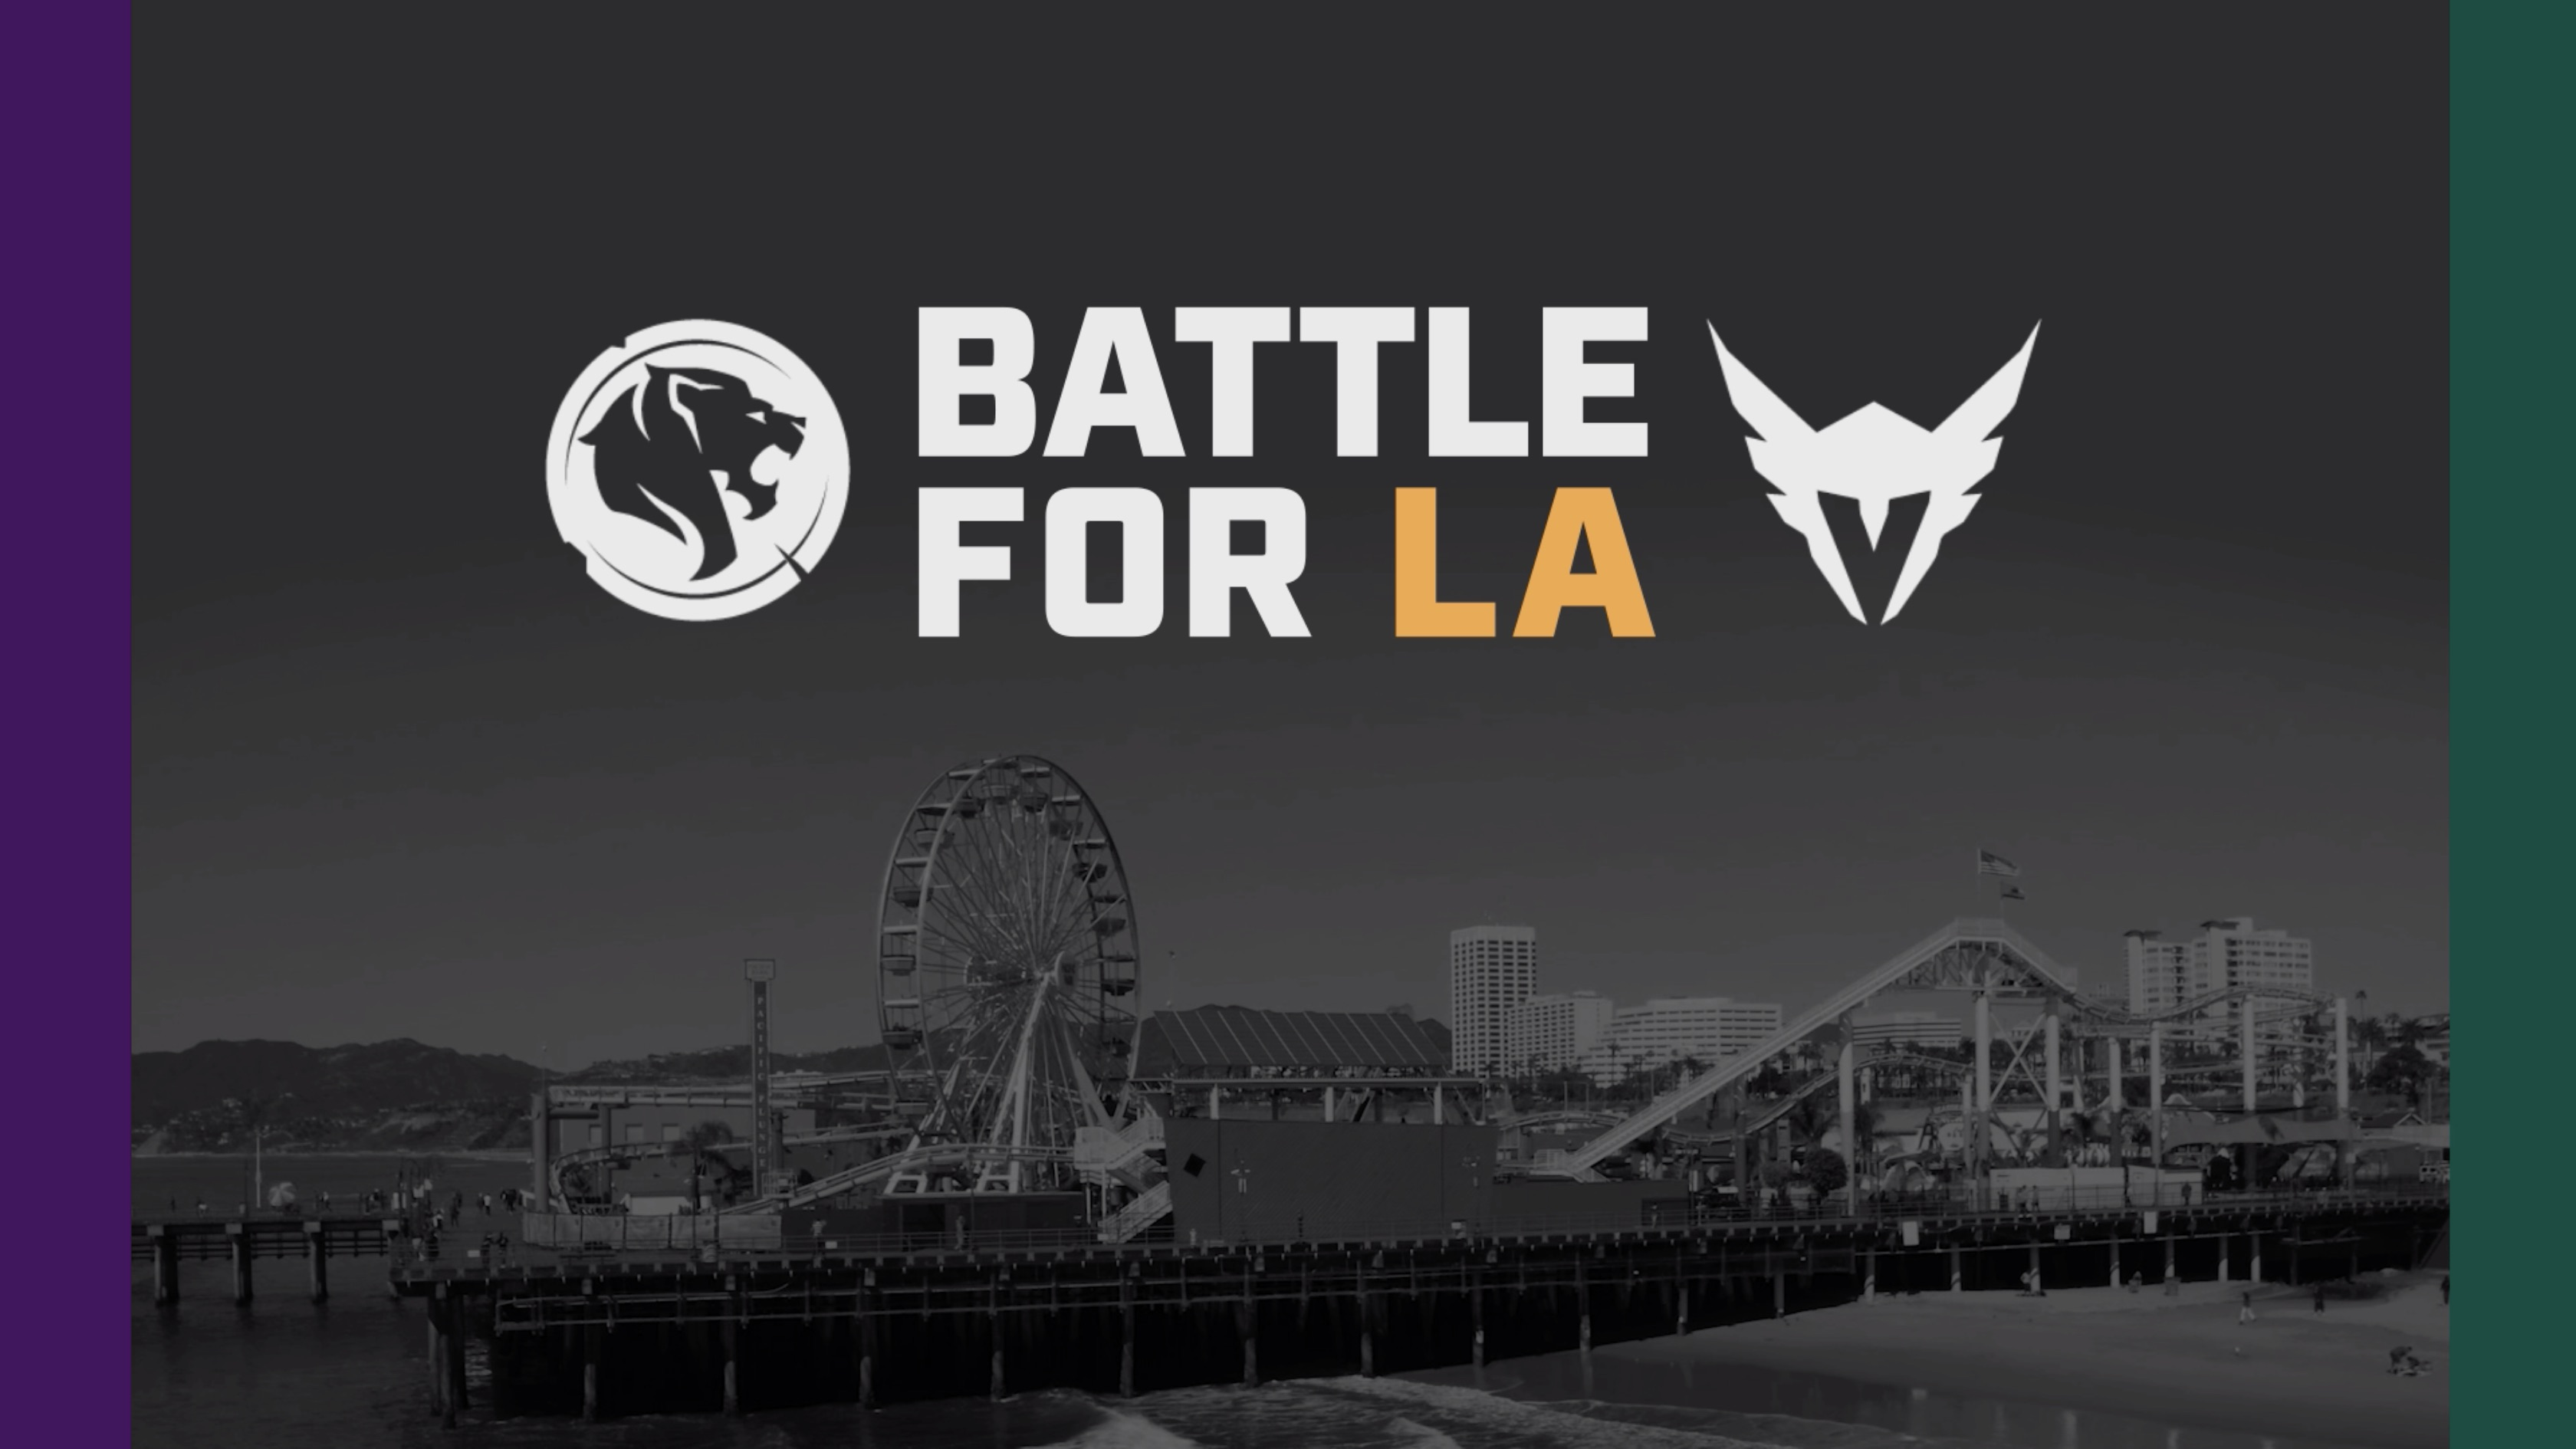 The Battle of LA